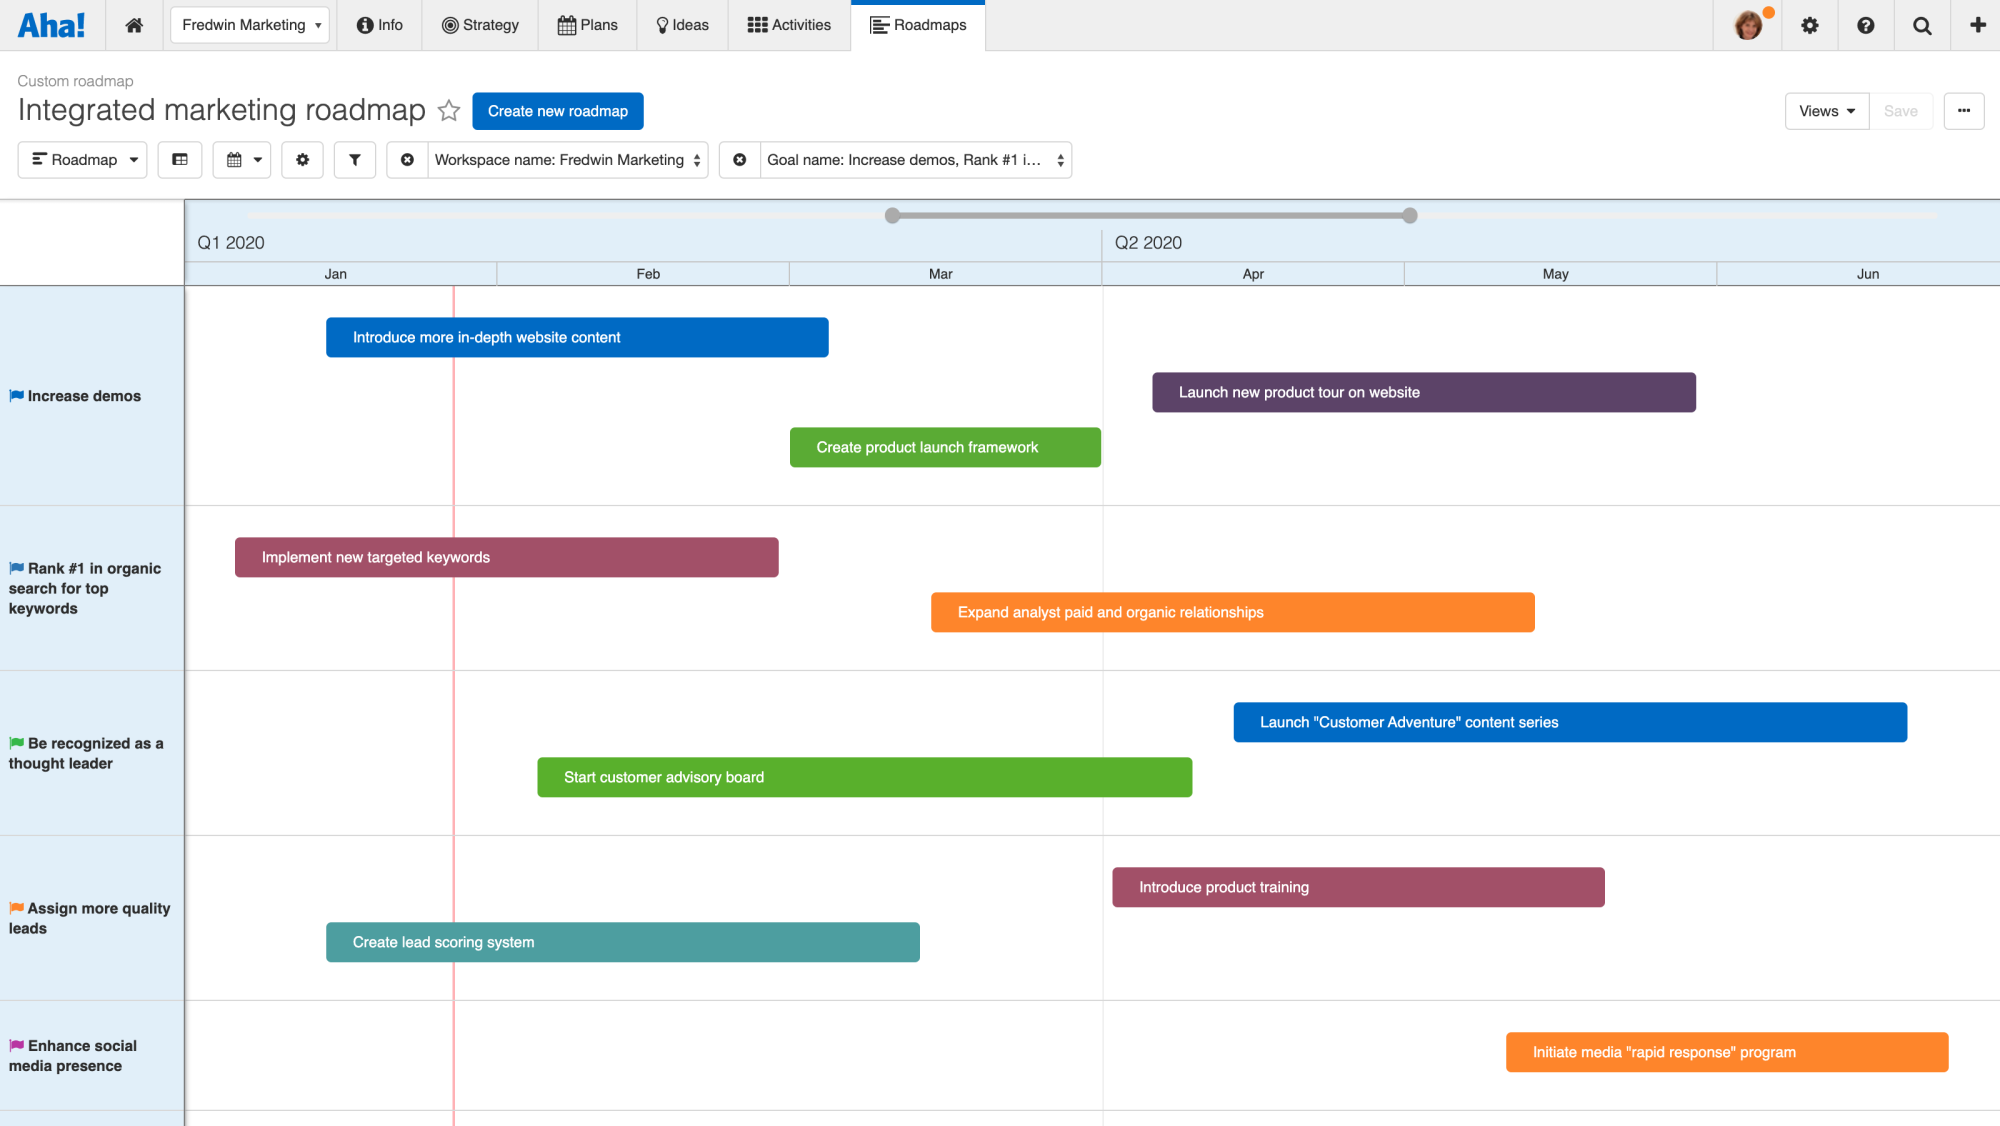 This is an example of an integrated marketing roadmap created using Aha!